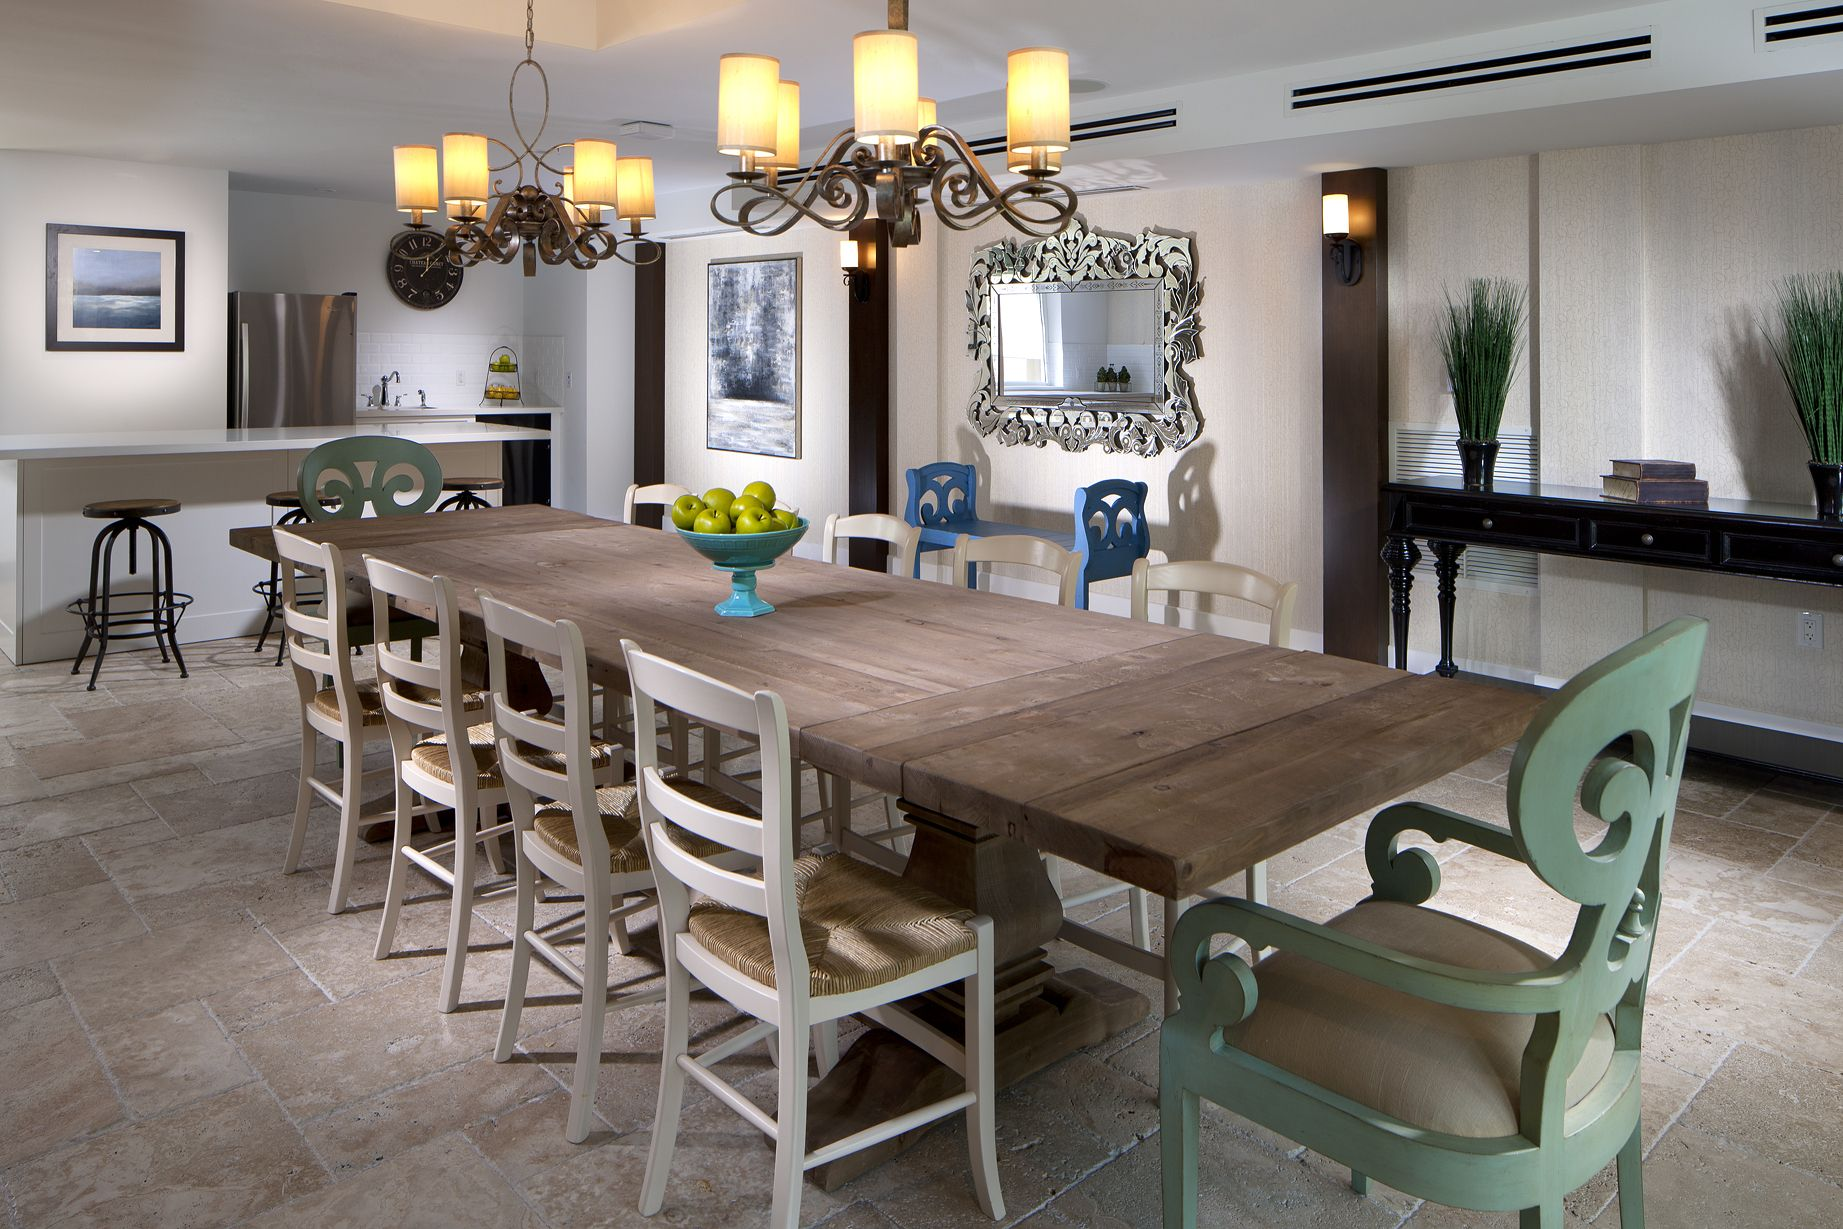 Long table and demonstration kitchen